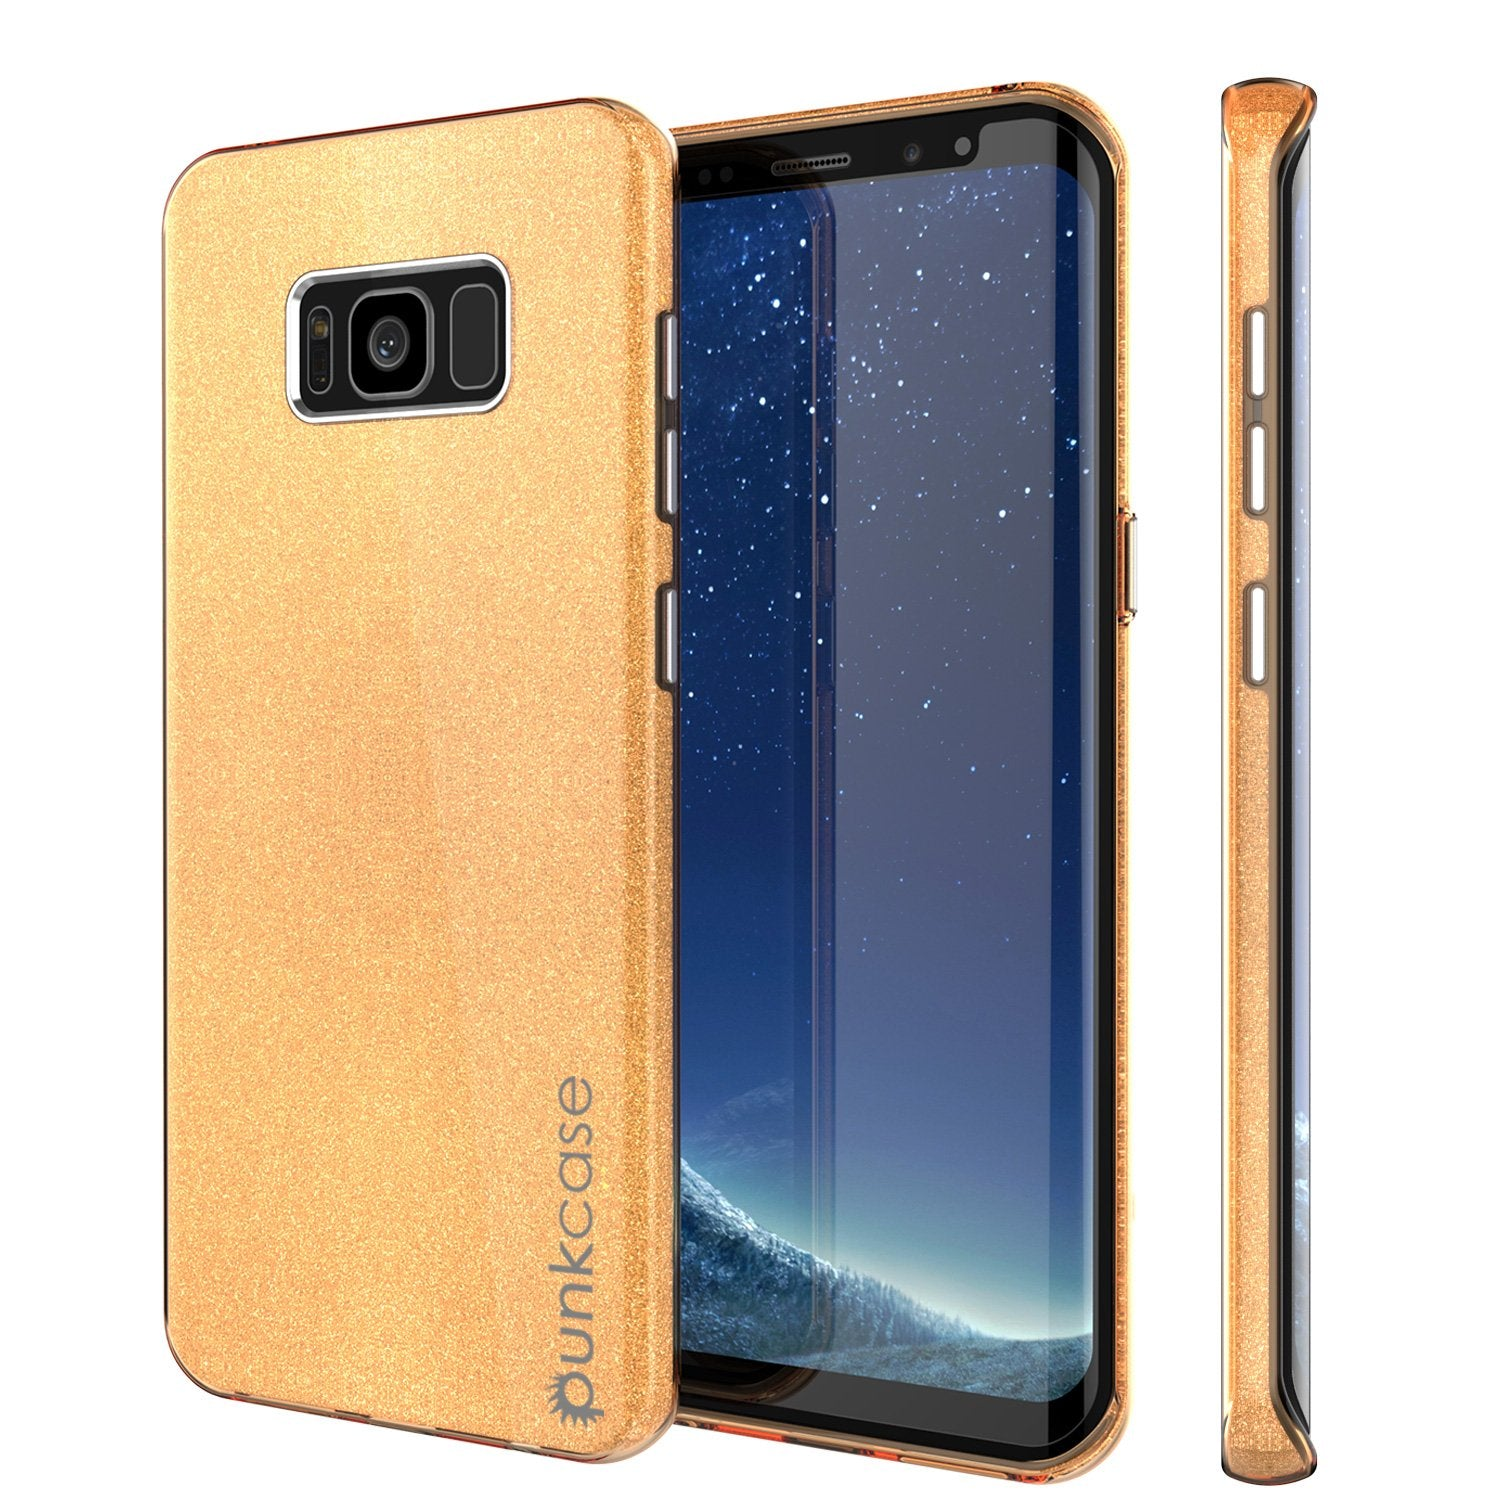 Galaxy S8 Case, Punkcase Galactic 2.0 Series Ultra Slim Protective Armor TPU Cover w/ PunkShield Screen Protector [Gold]